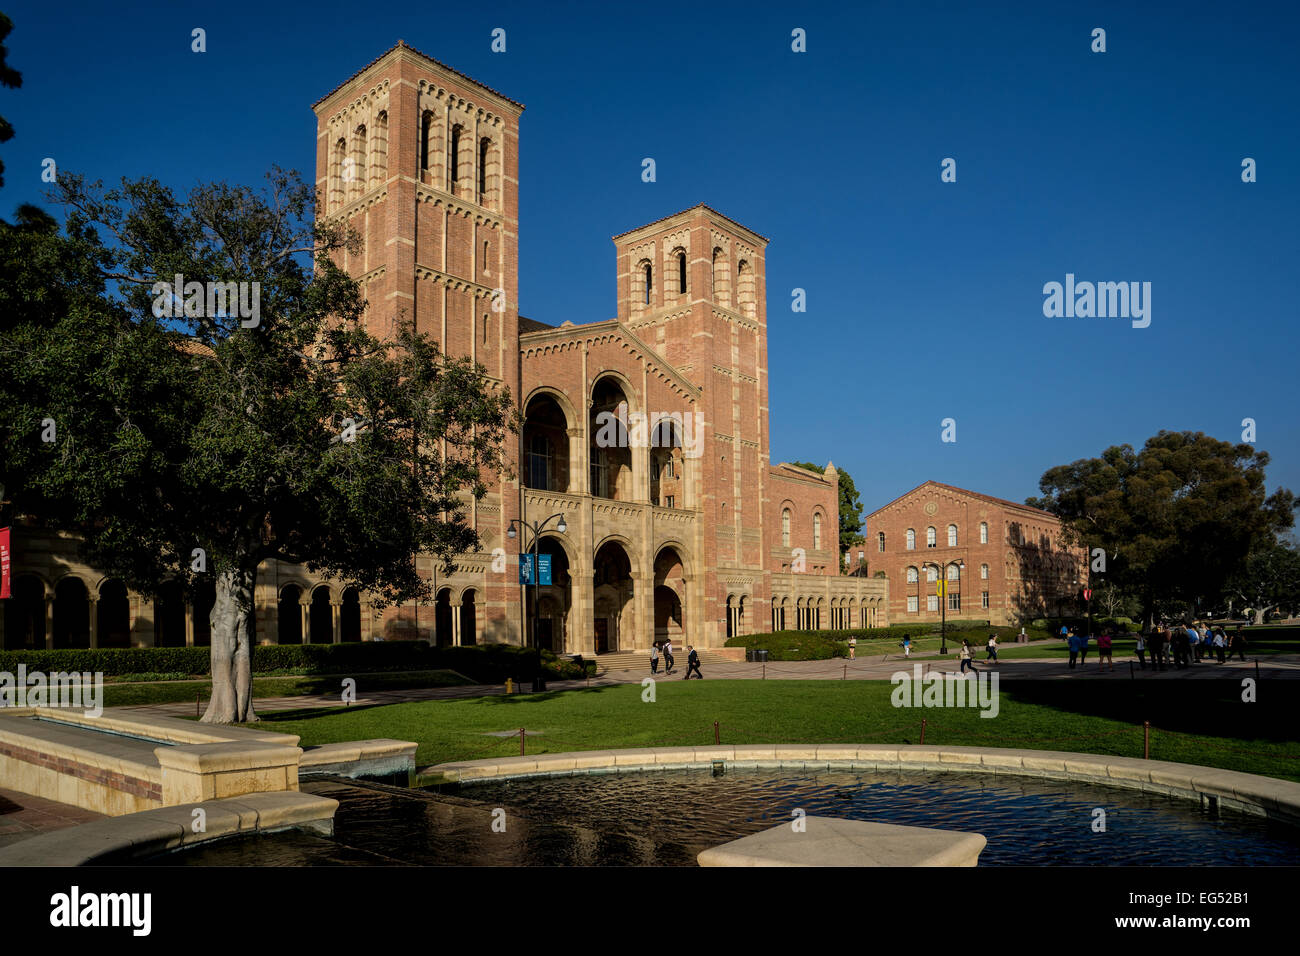 Royce Hall on the UCLA Campus in Los Angeles California - Stock Image